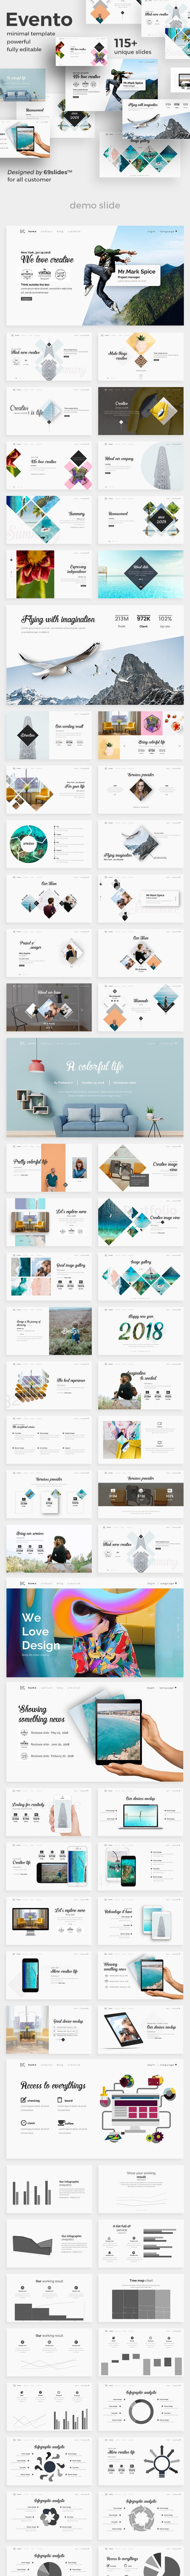 evento creative powerpoint template by 69slides graphicriver